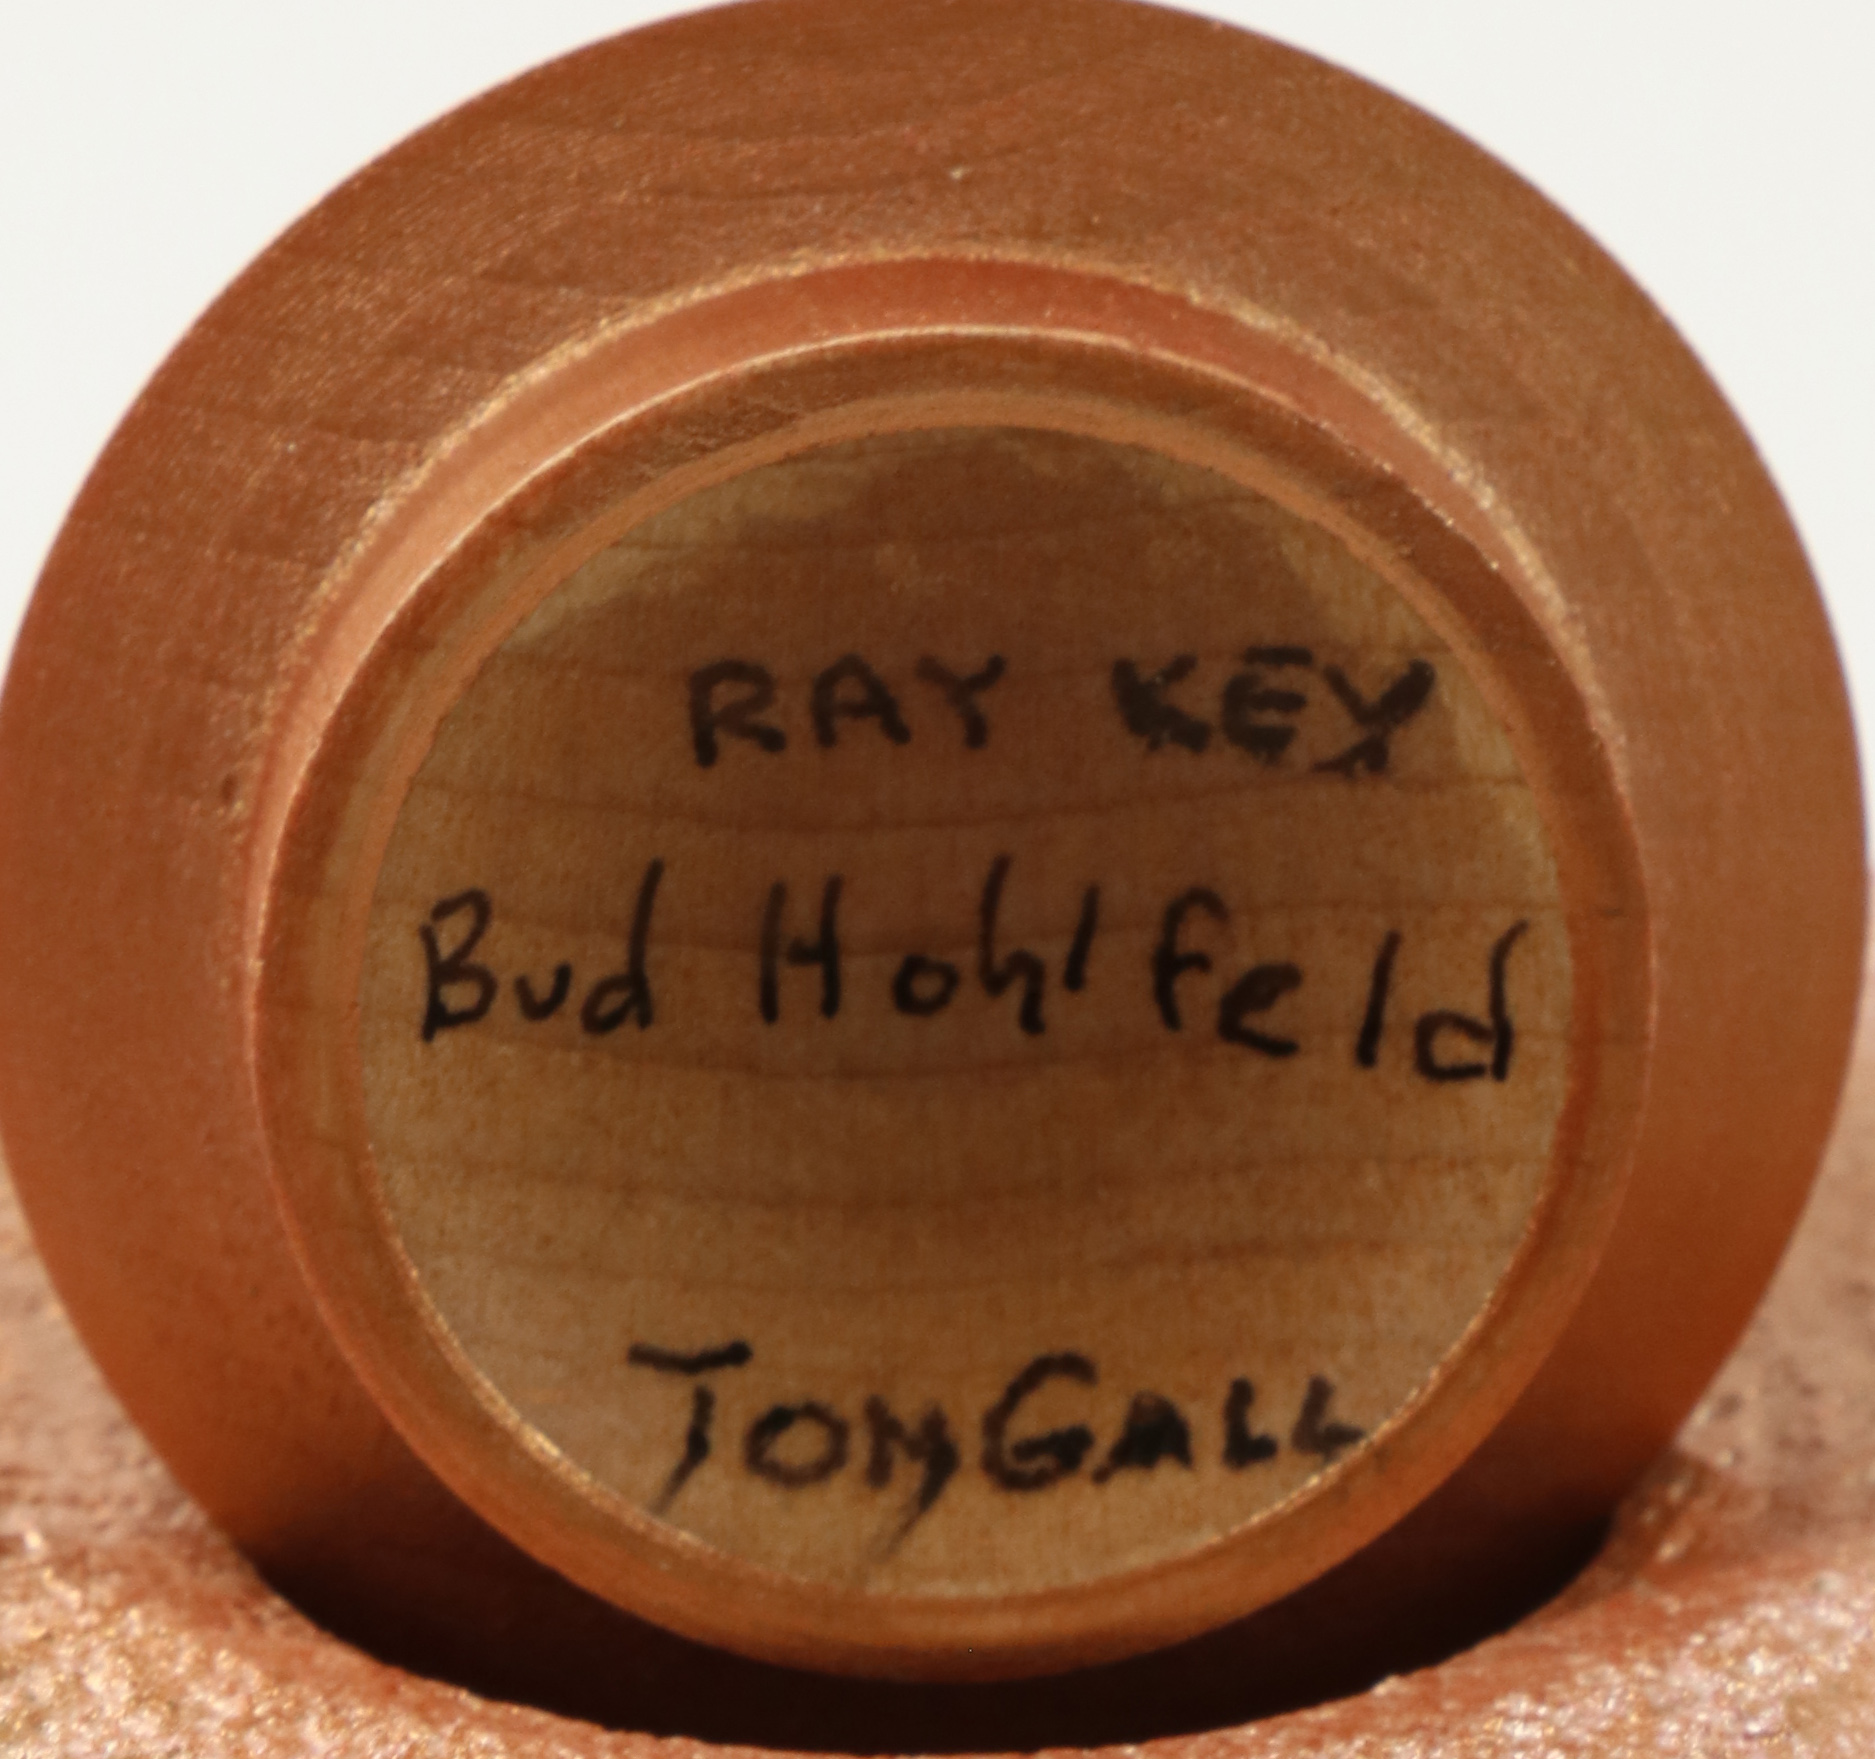 Lot 114 - Tom Gall & Bud Hohlfeld (USA) coloured and textured hollow form 16x10cm. Signed